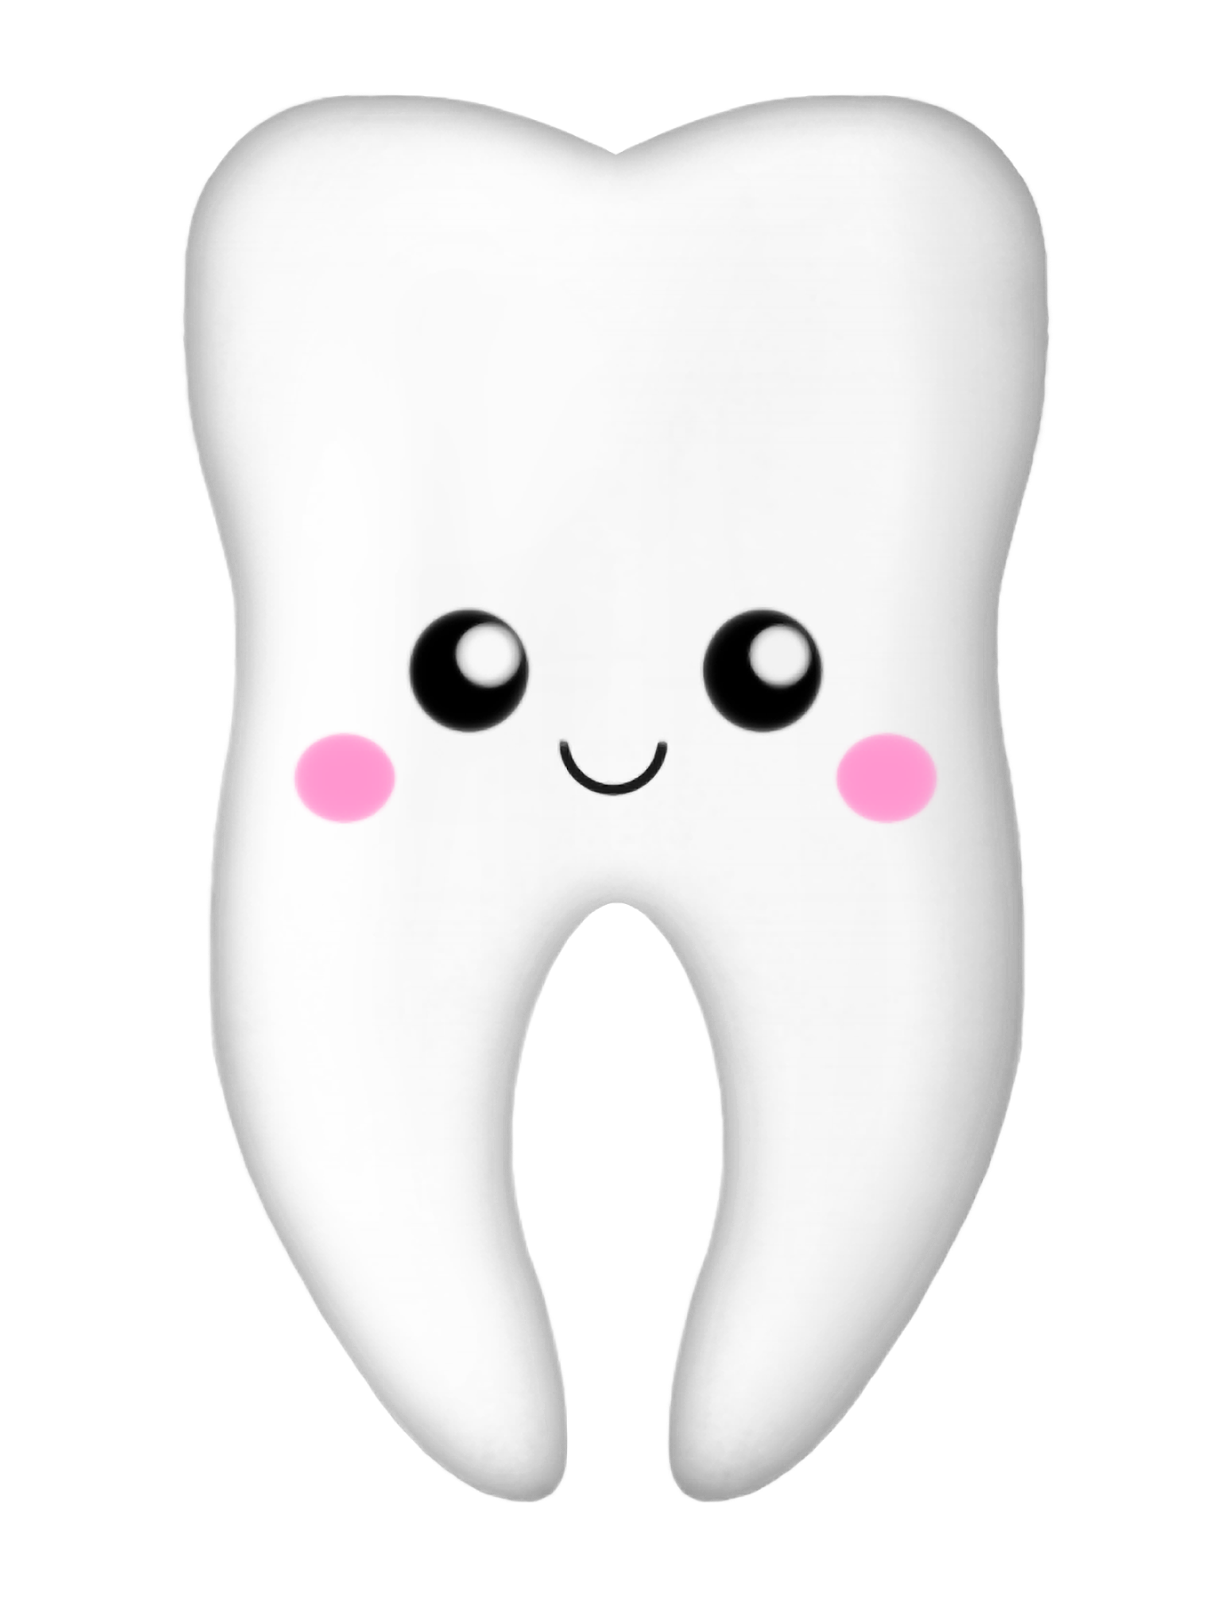 clipart picture of a tooth - photo #43